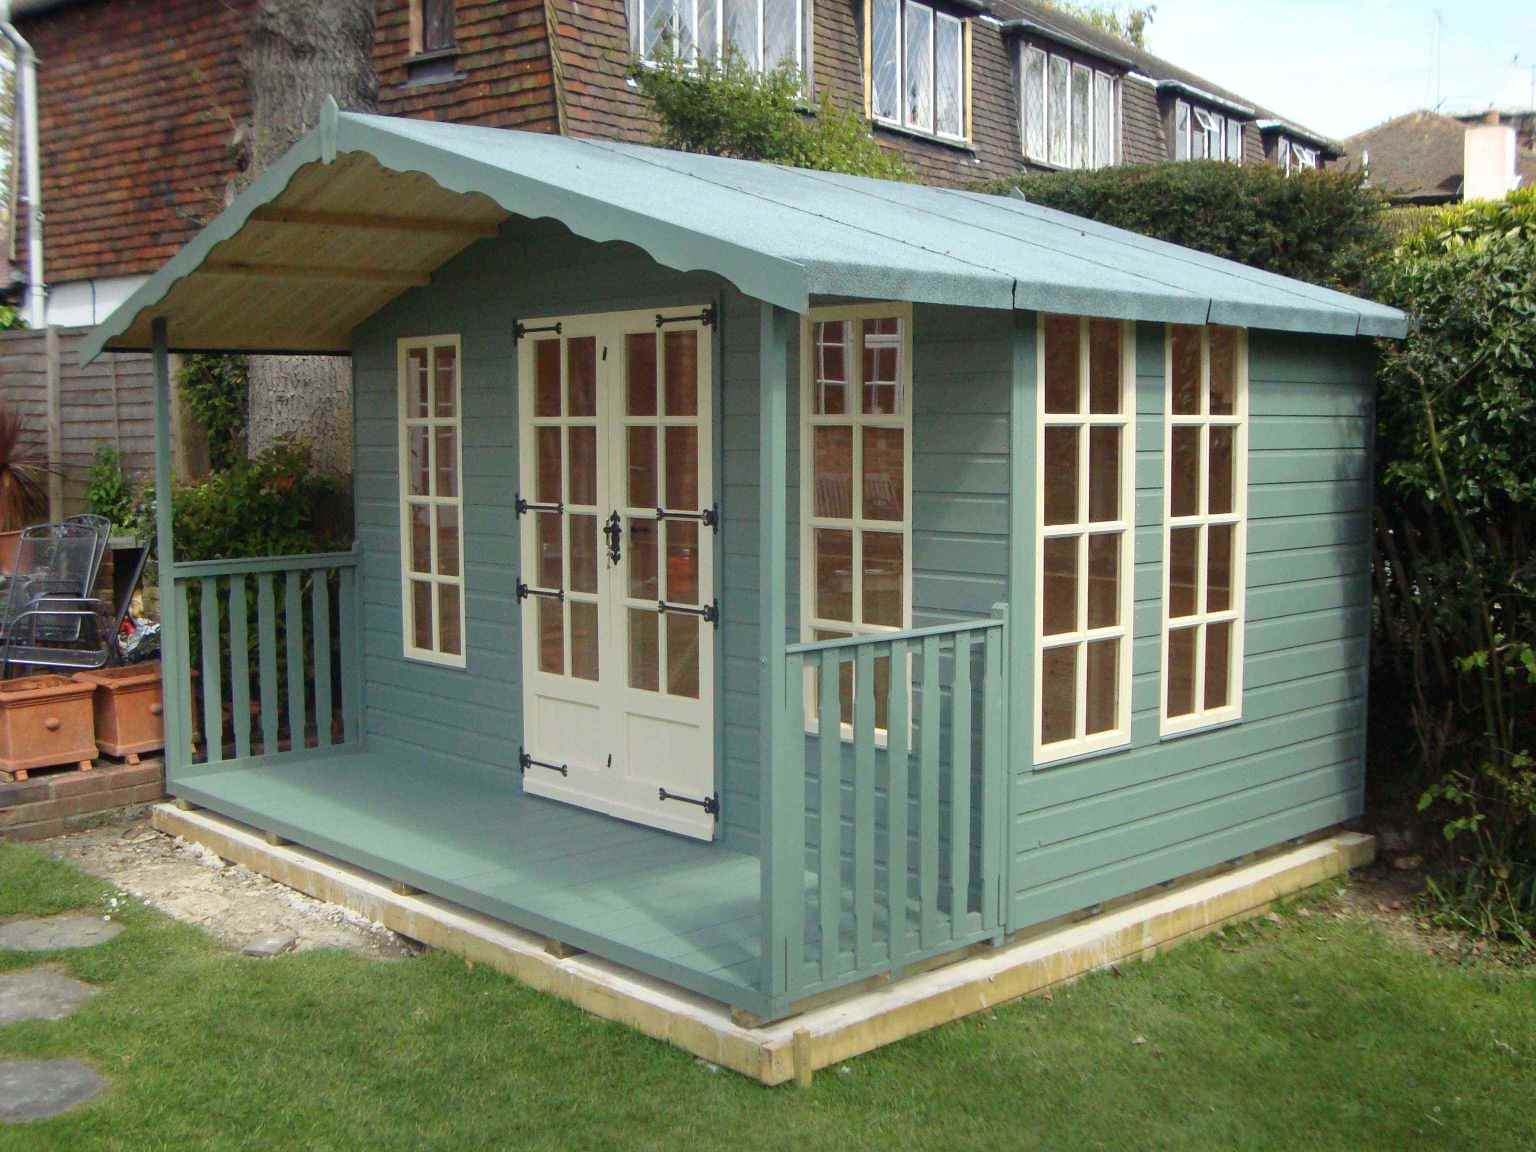 Summer houses garden rooms home offices bespoke mb Summer homes builder